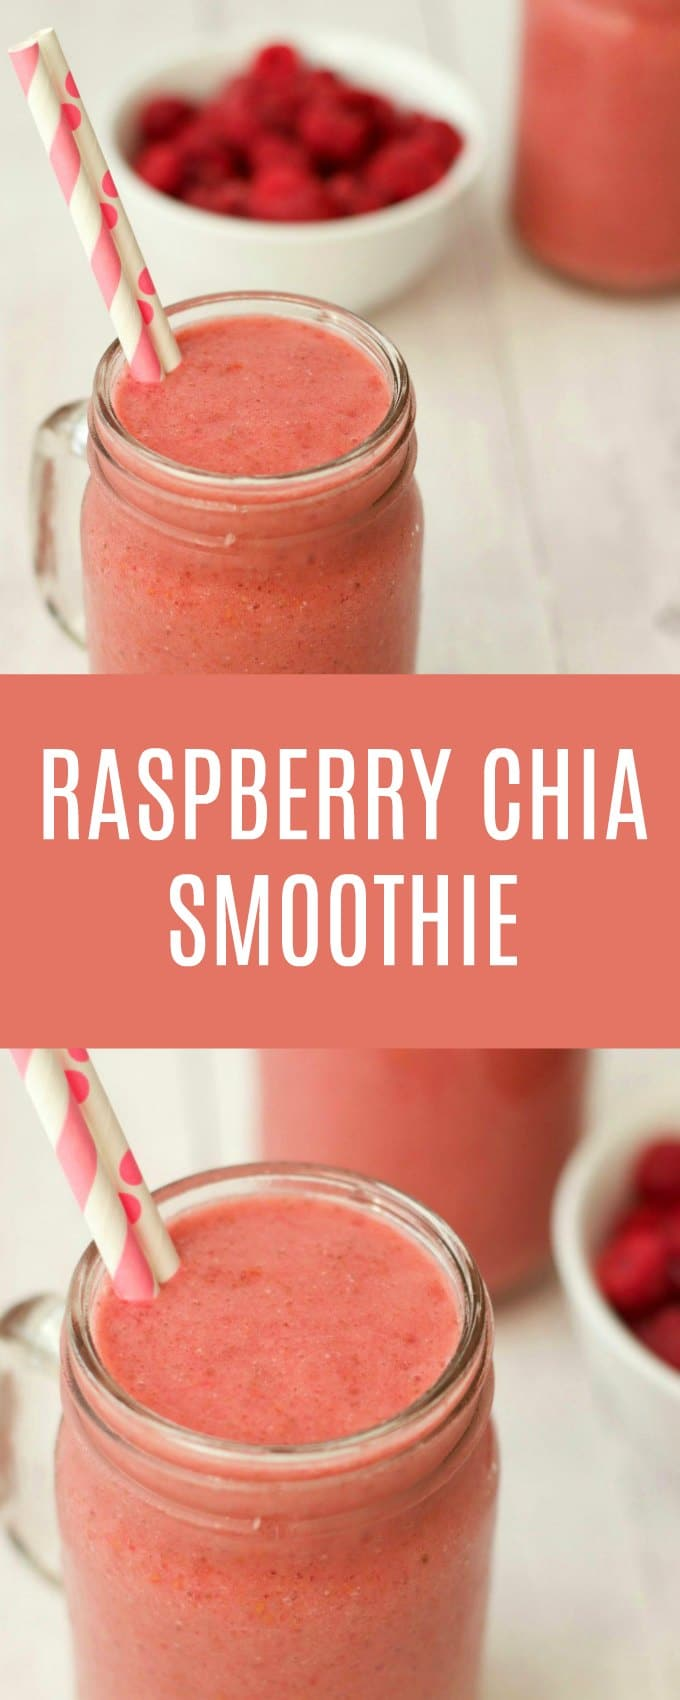 Perfectly sweet, smooth, ice-cold and satisfying Raspberry Chia Smoothie. Ideal for breakfast or as a refreshing post-workout snack. Vegan and gluten-free. | lovingitvegan.com